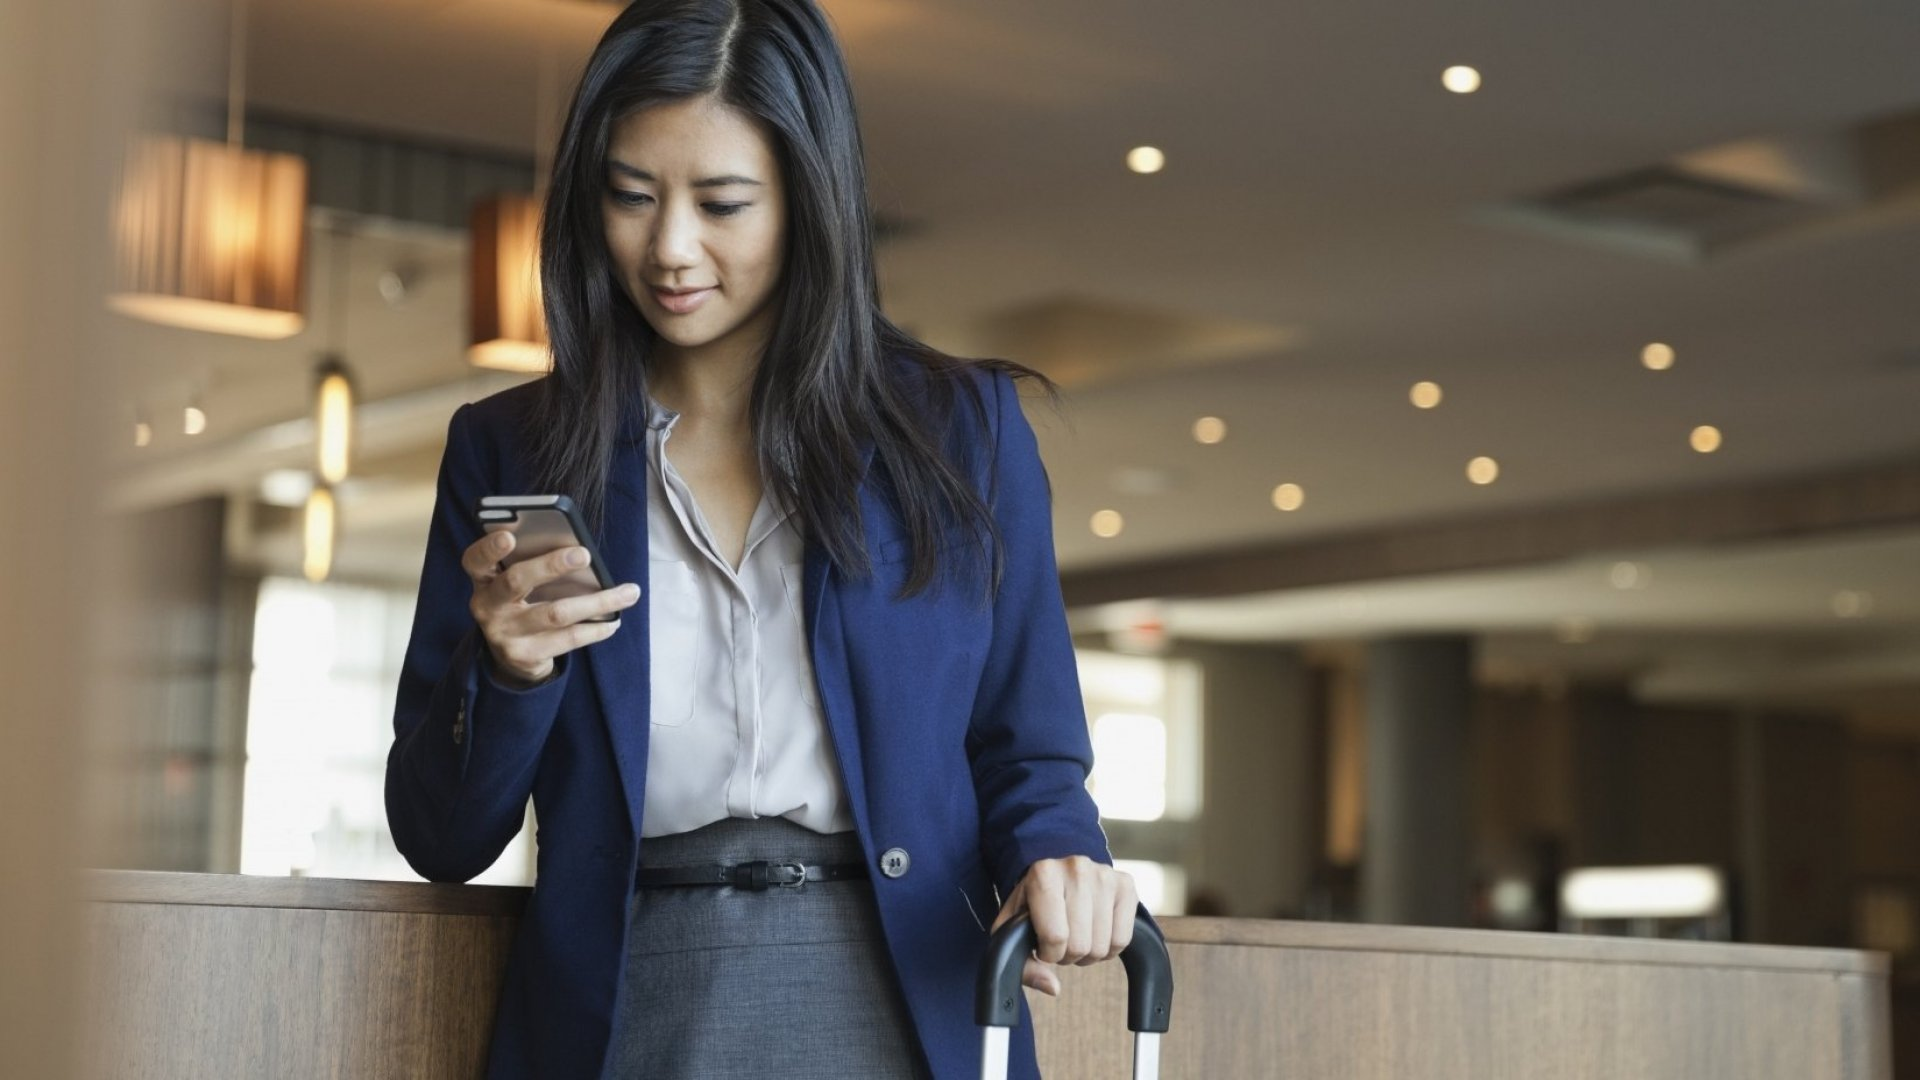 5 New Apps to Save Your Skin on a Business Trip